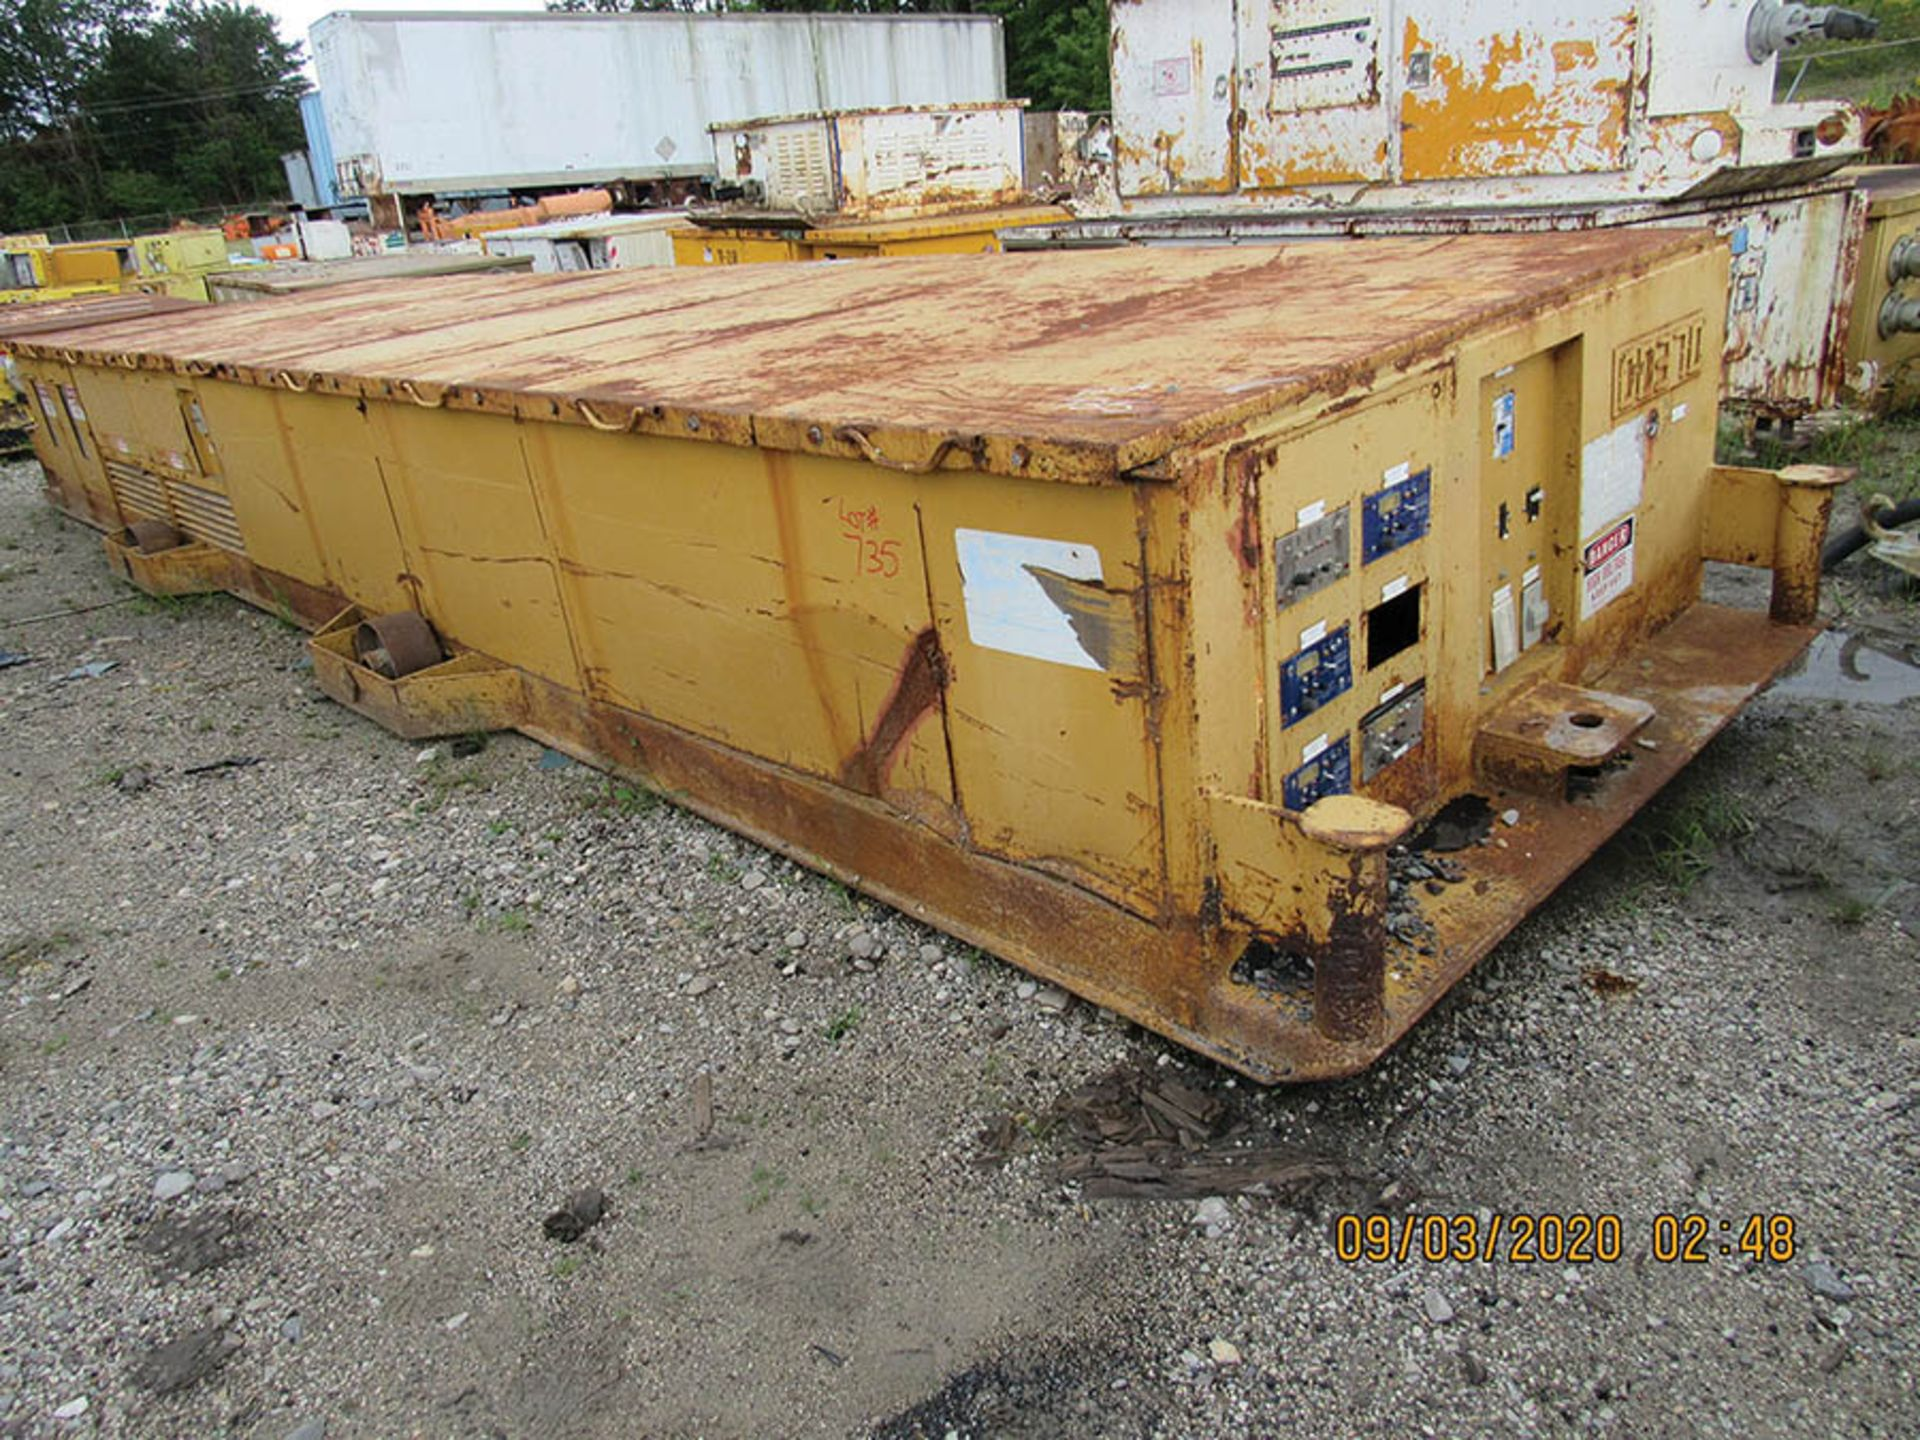 Lot 735 - LINE POWER CO. MODEL 300KVA PC POWER CENTER, S/N R3032, INPUT 13200/7620 VAC 3 PH. 60HZ AC OUTPUT